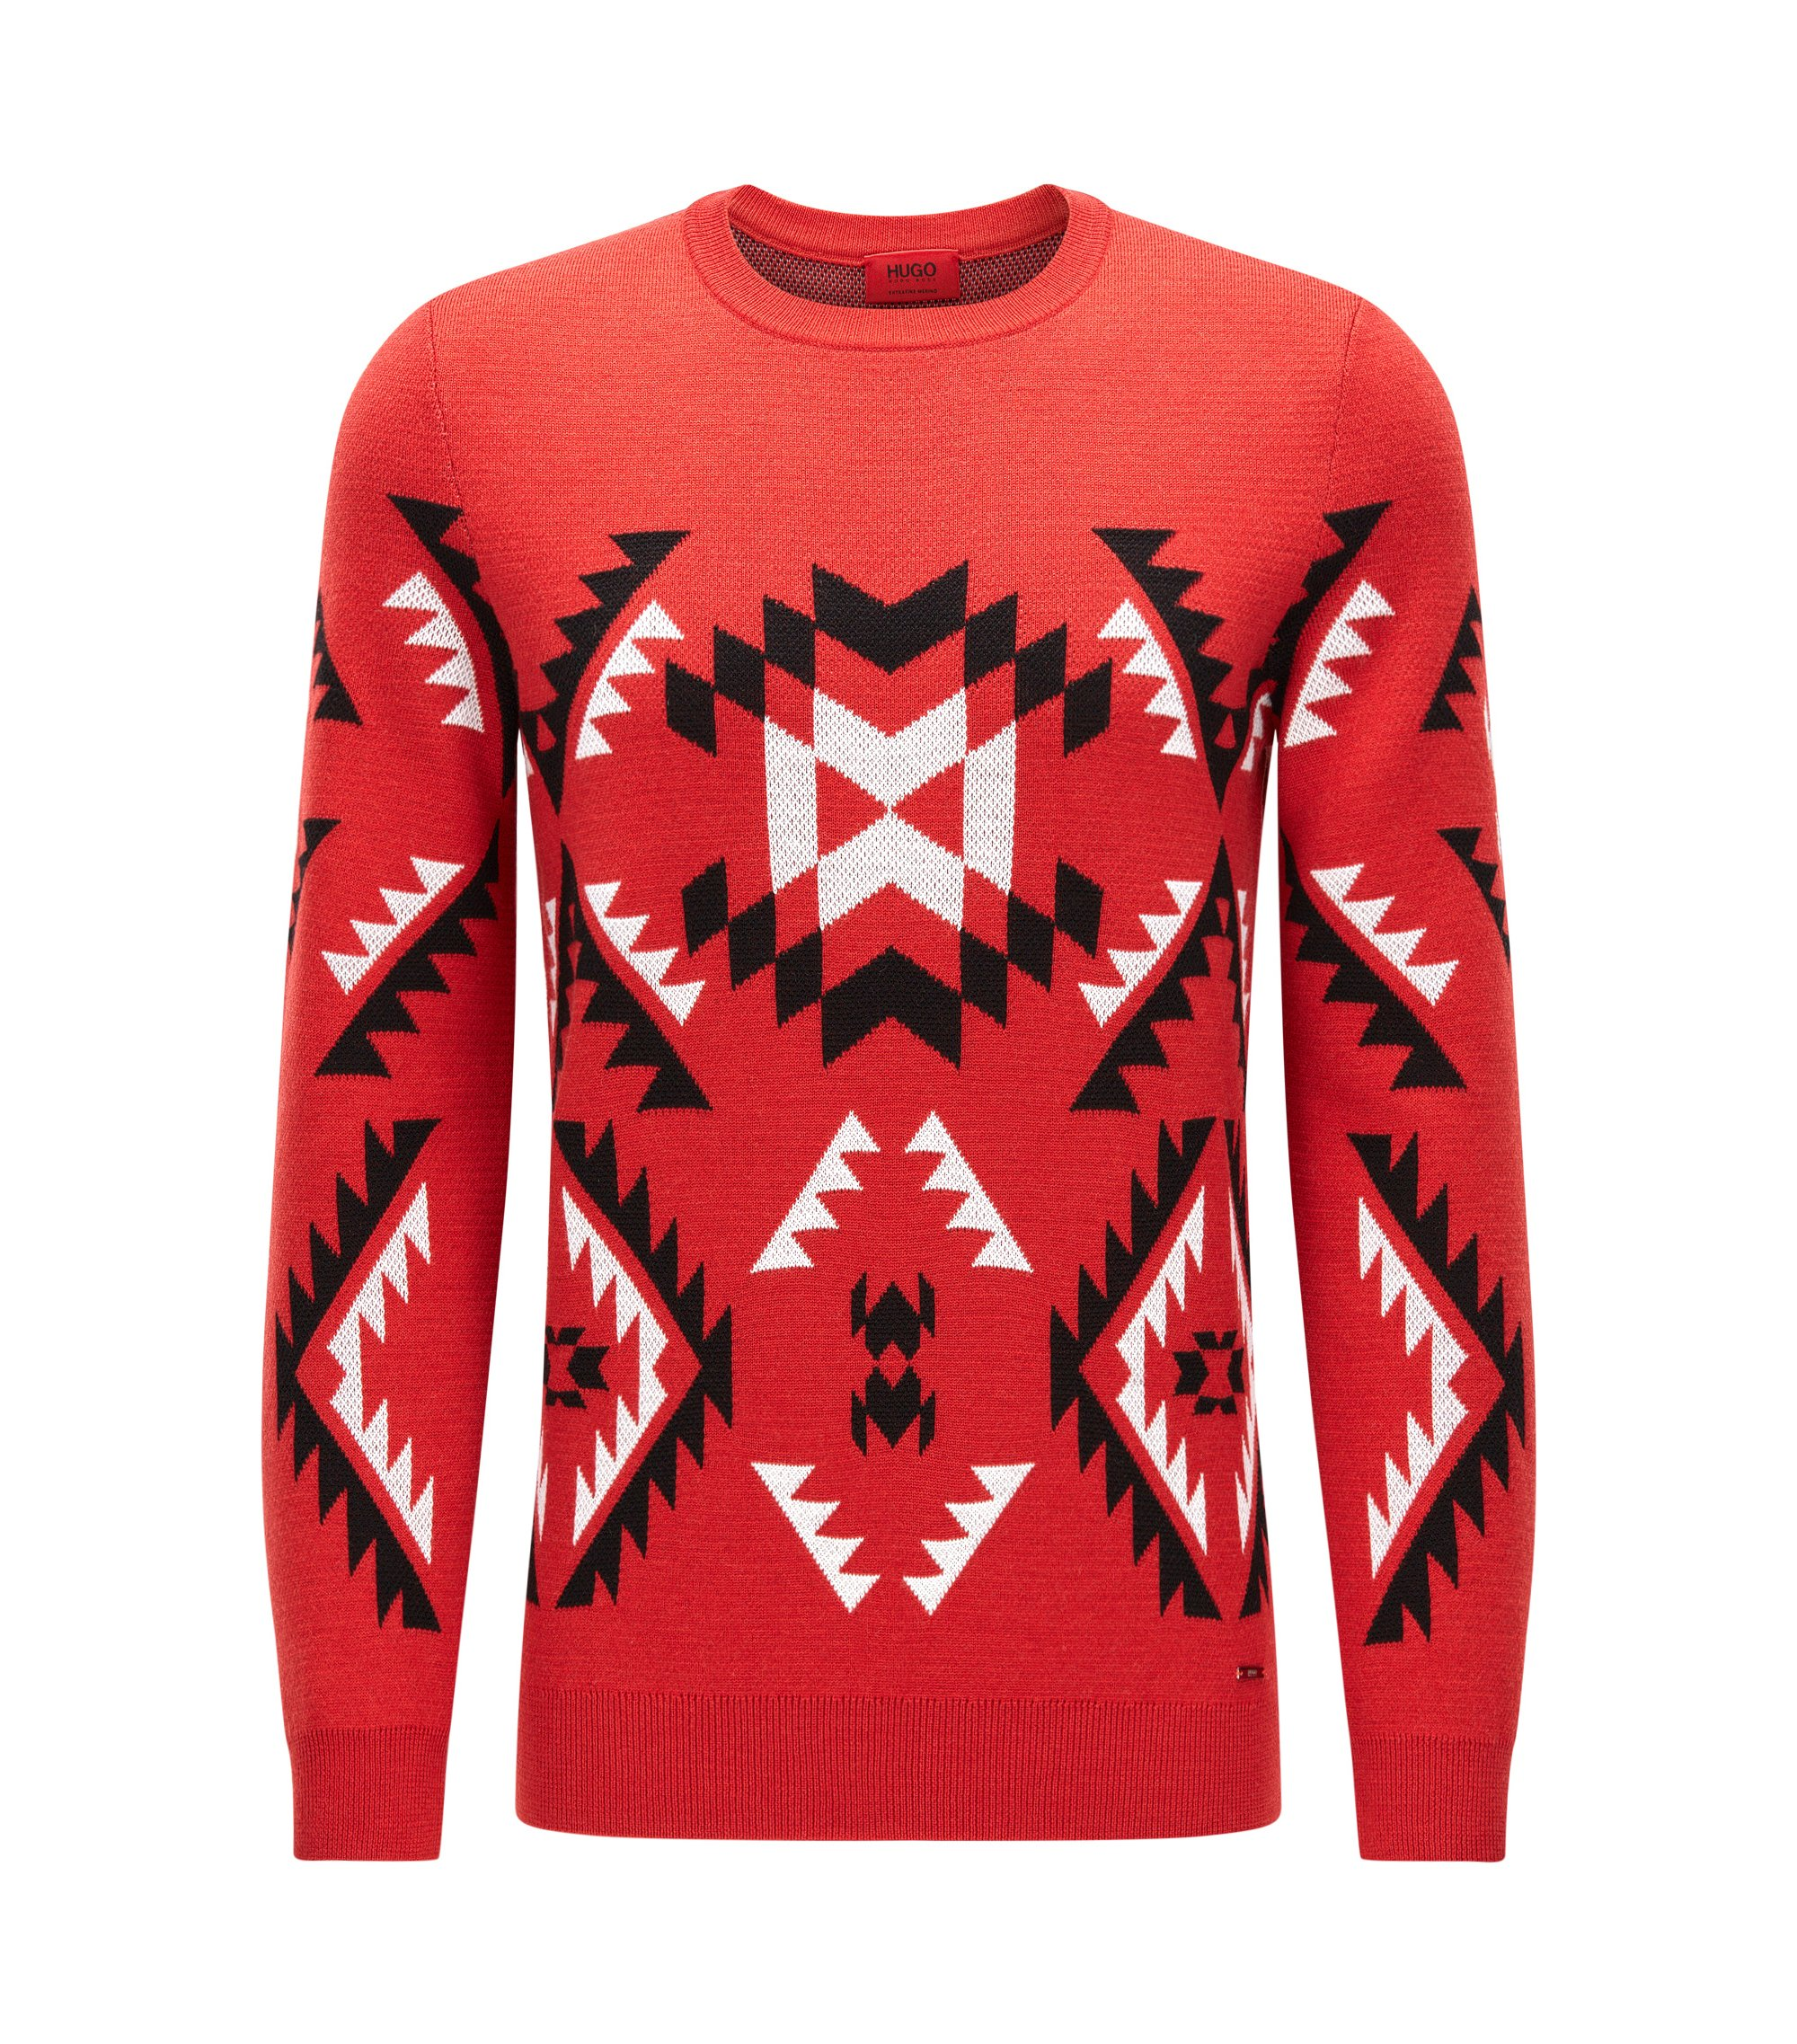 Patterned crew-neck sweater in virgin wool jacquard, Red